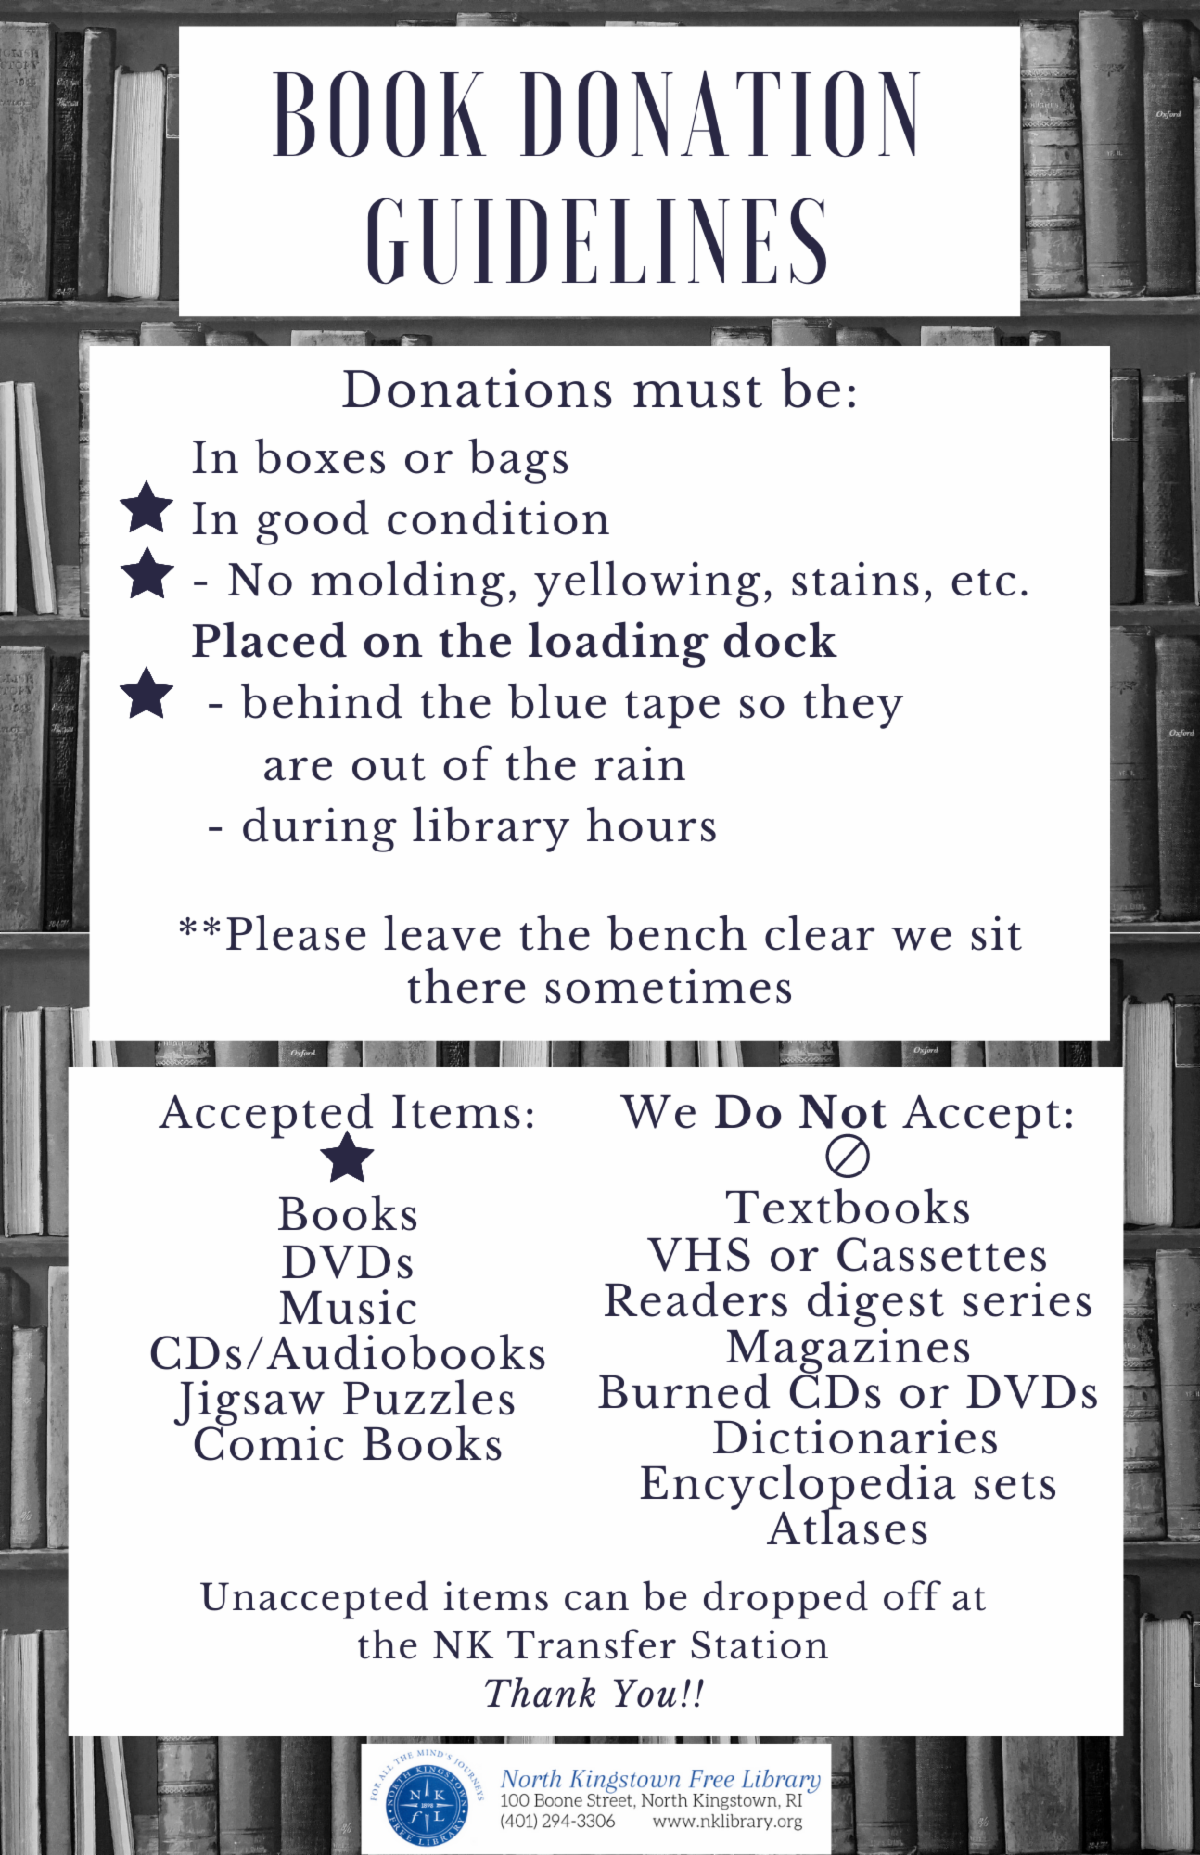 Image of the book donations guidelines. If you have questions about what is and is not accepted, call the library at (401) 294-3306.